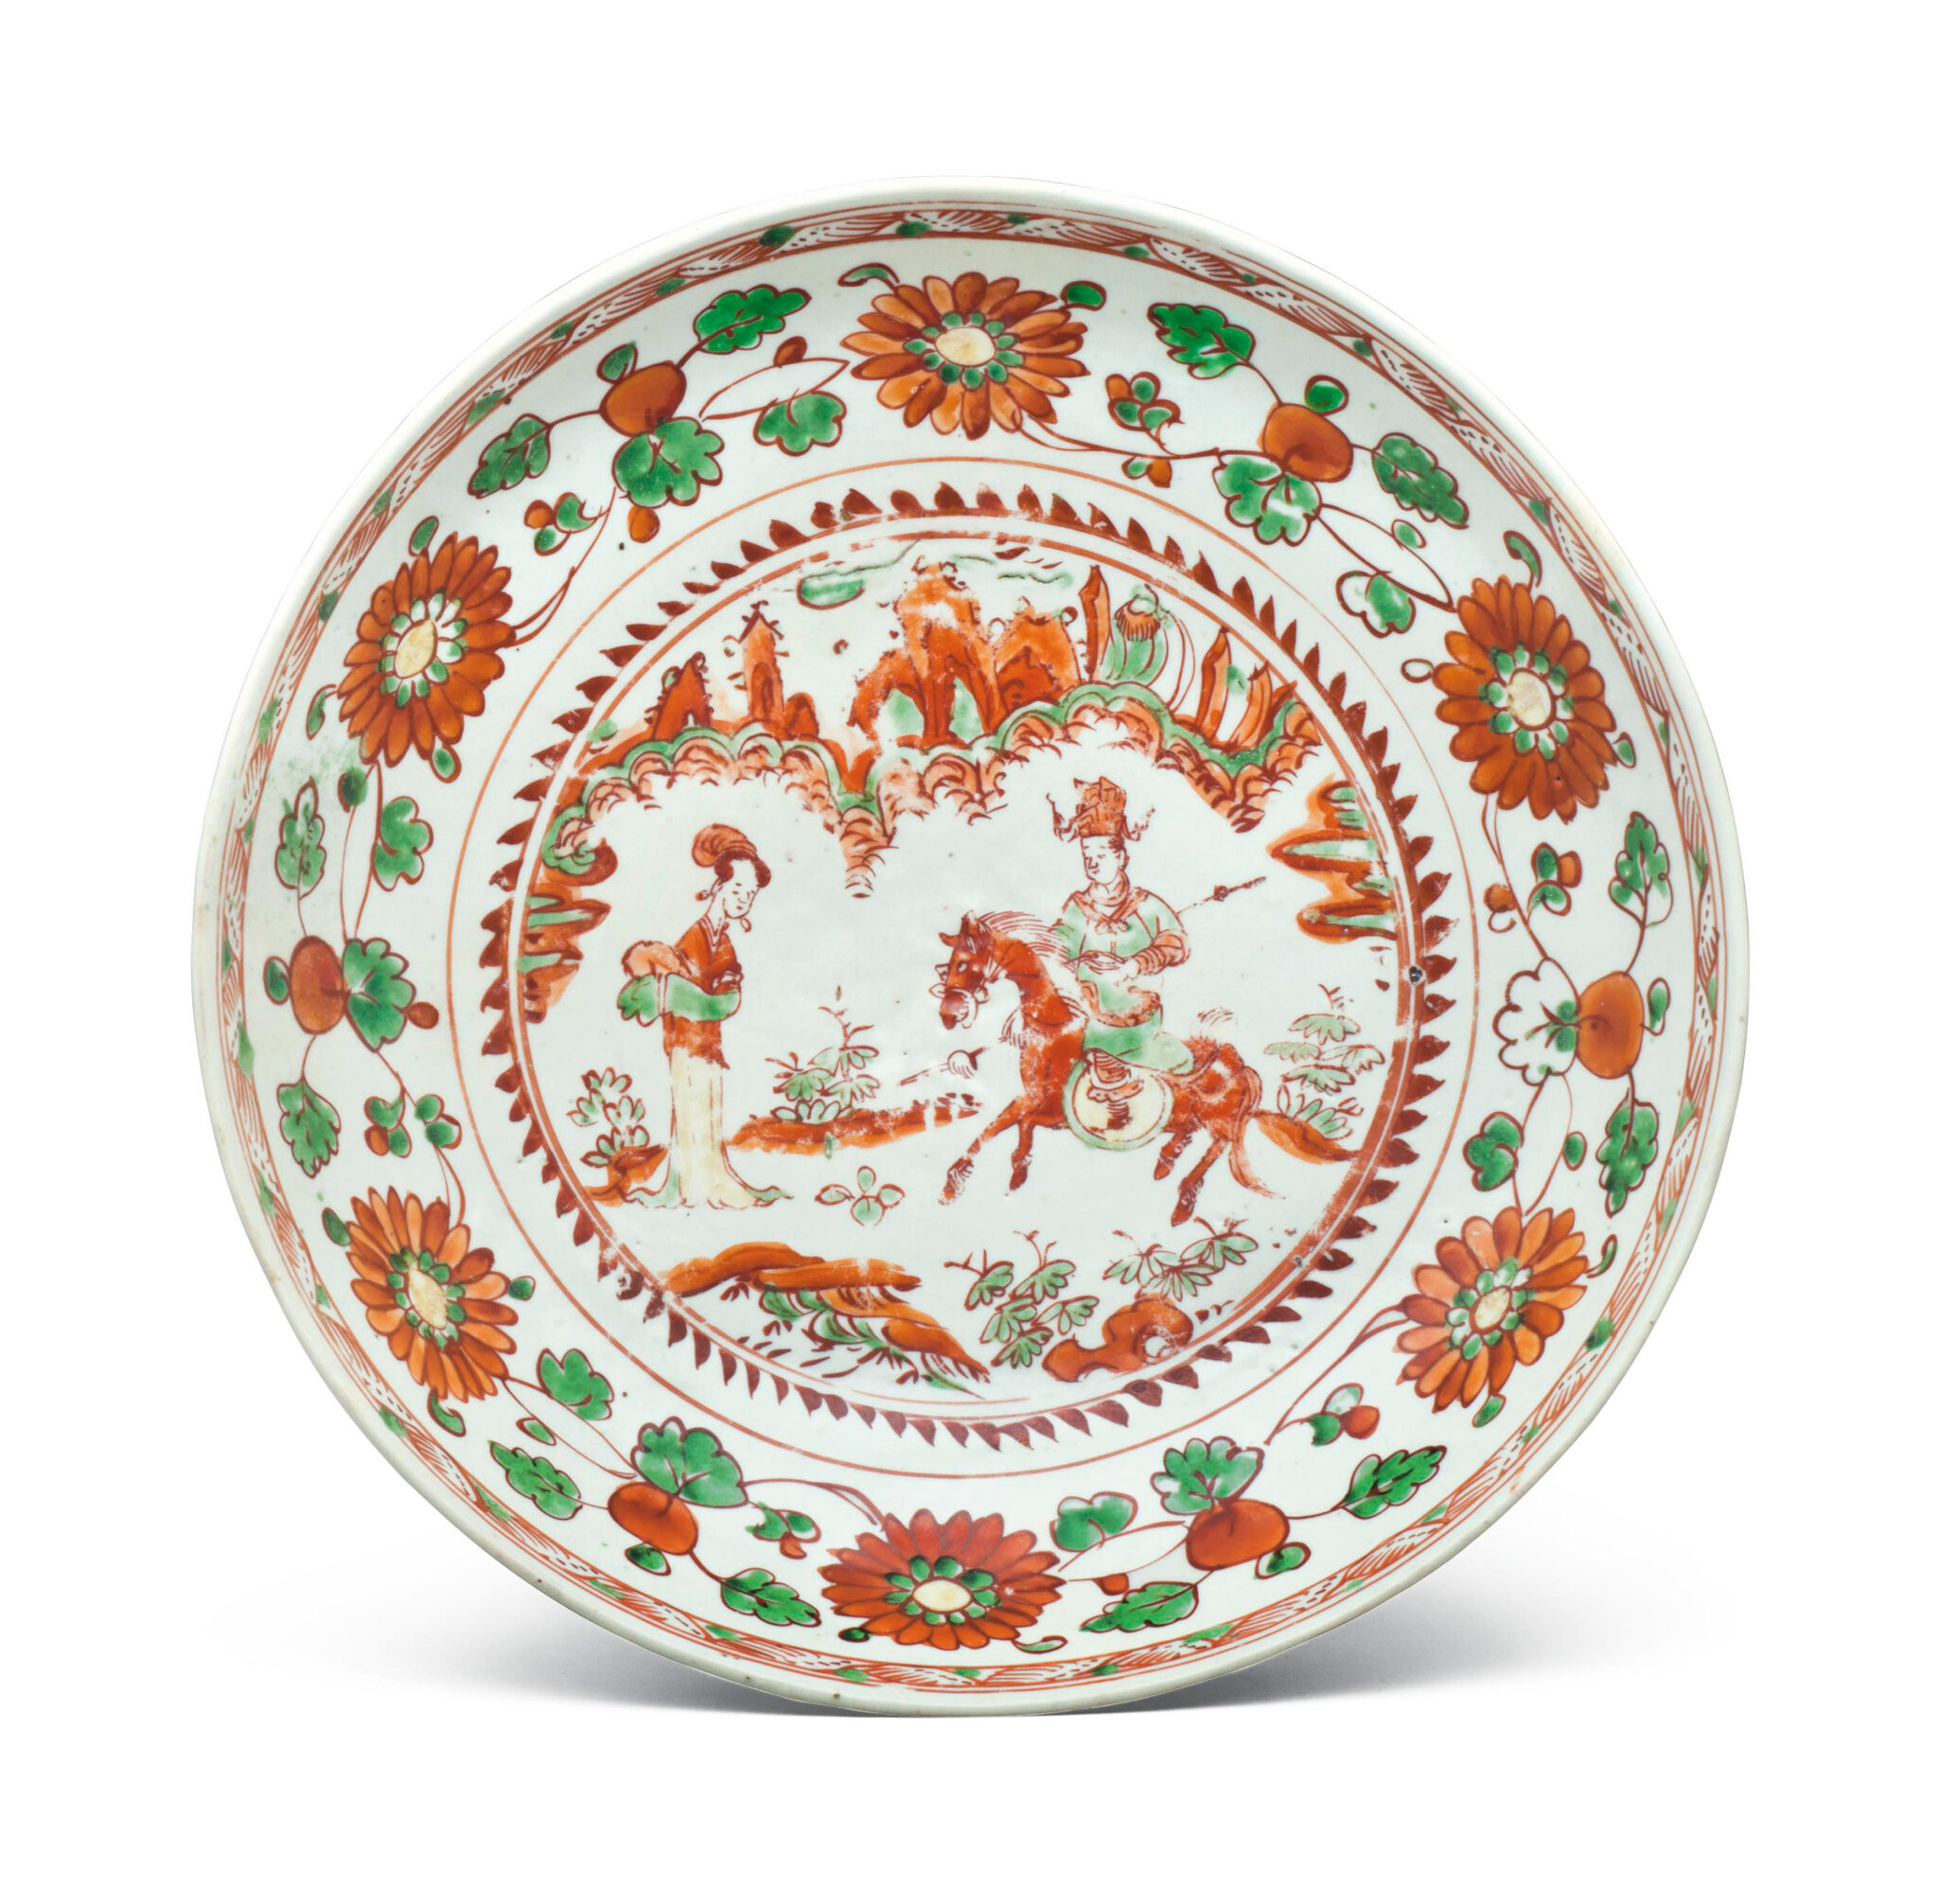 2013_NYR_02689_1521_000(a_rare_polychrome-decorated_dish_ming_dynasty_16th_century)